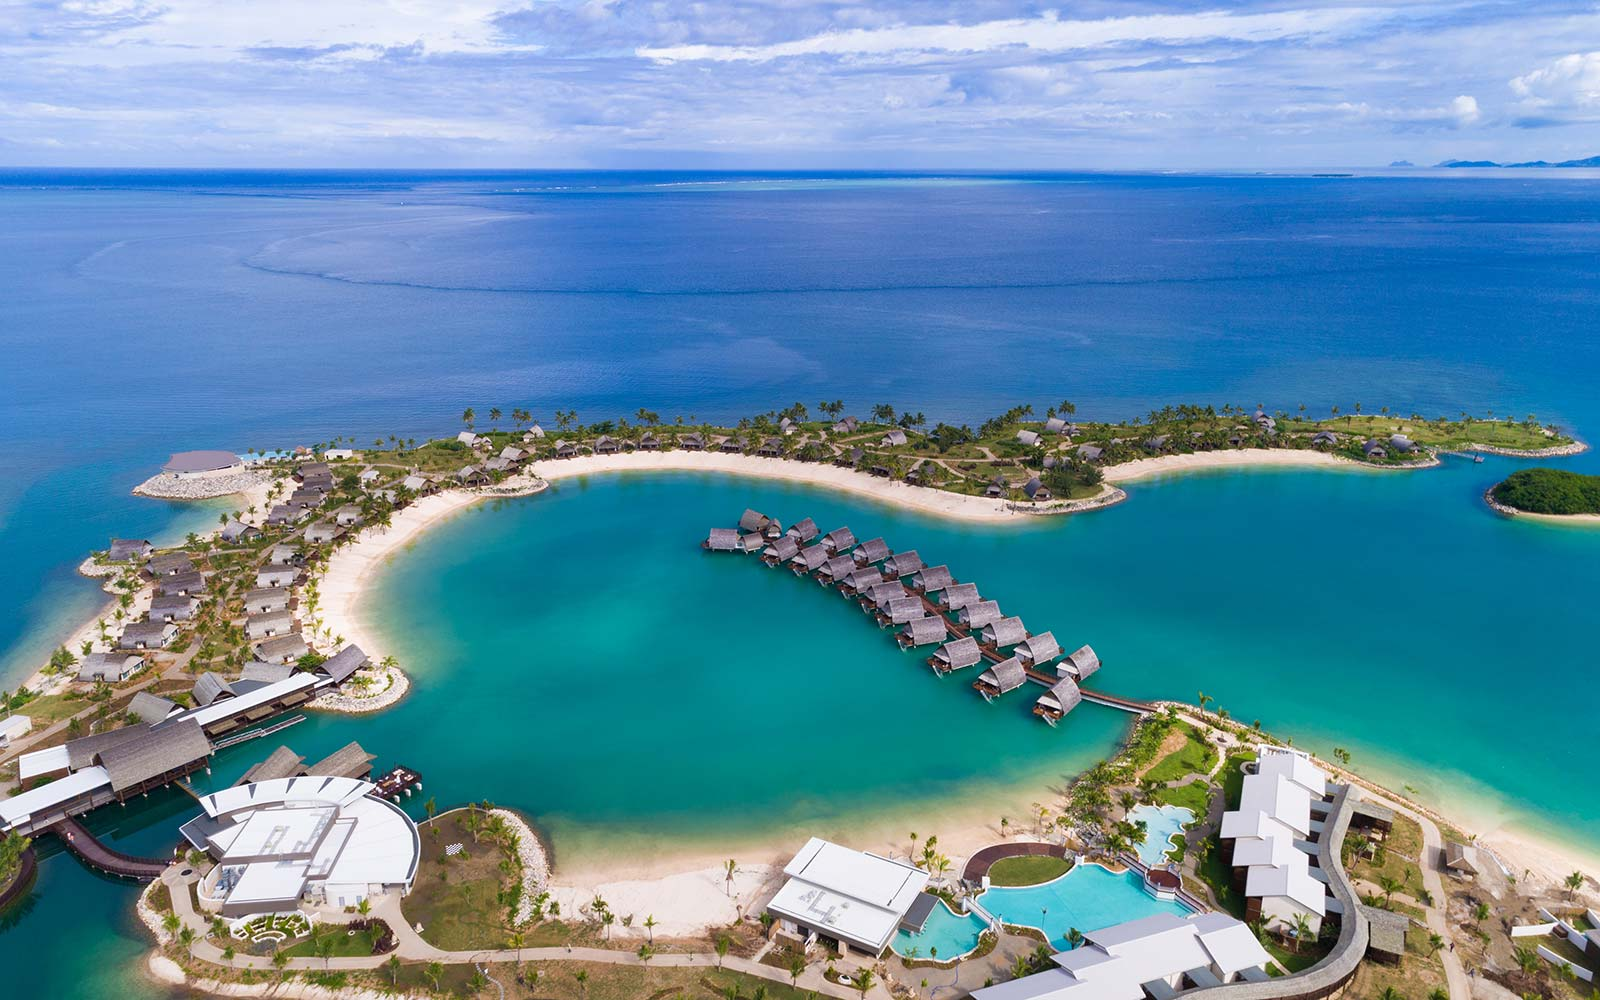 Sleep Over A Crystal Clear Lagoon In The First Overwater